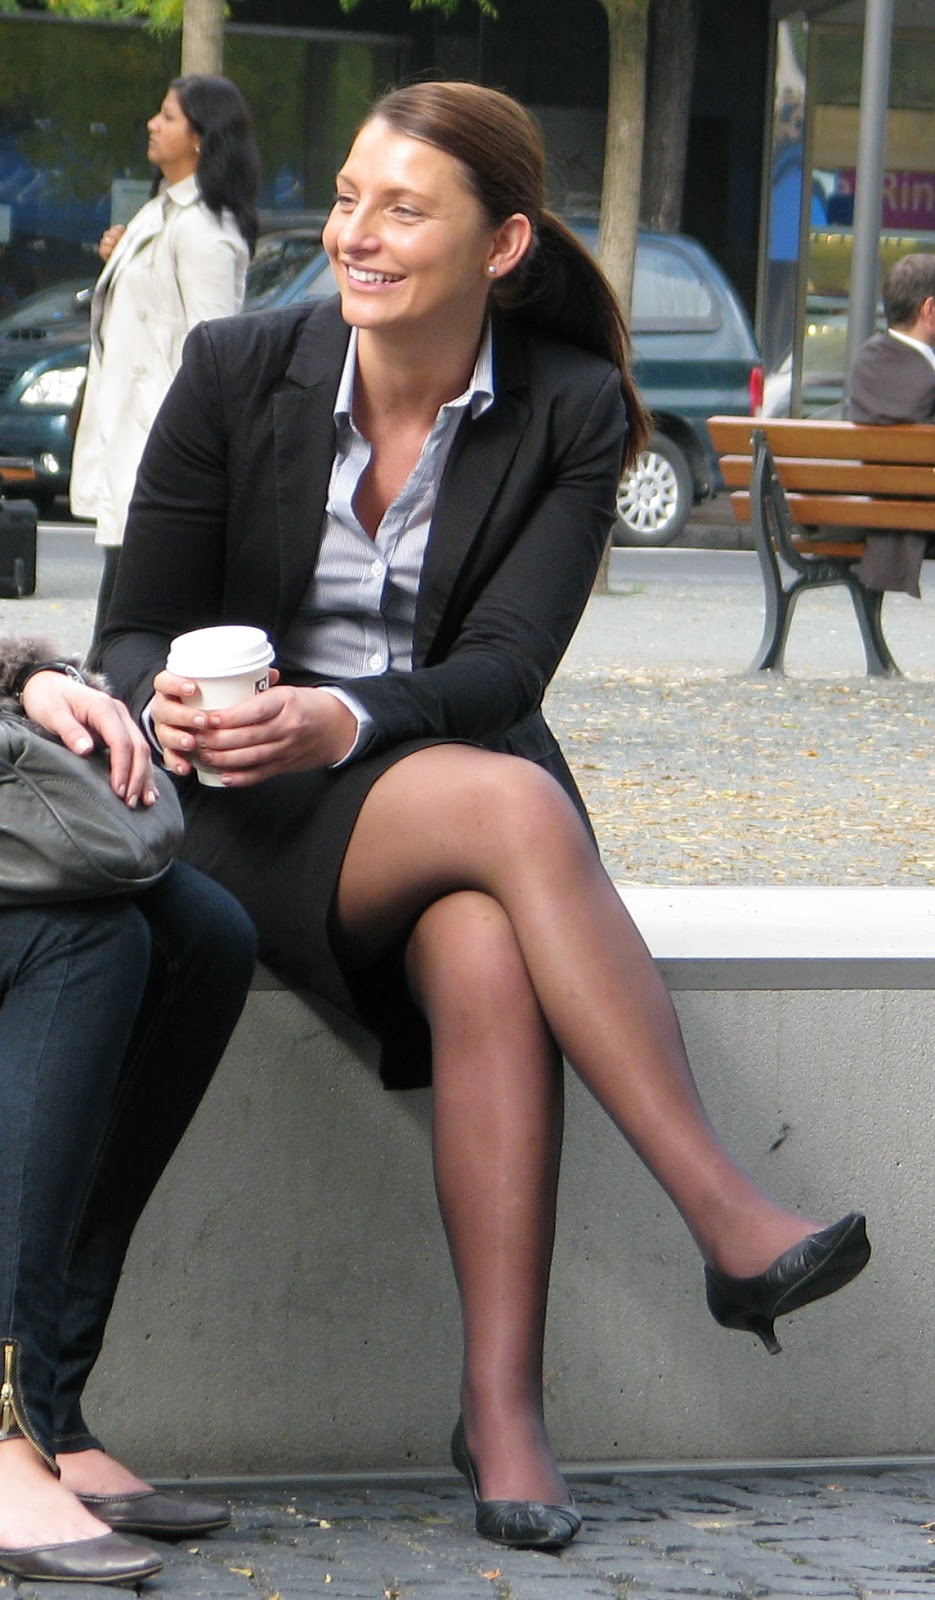 Women in short skirts and stockings